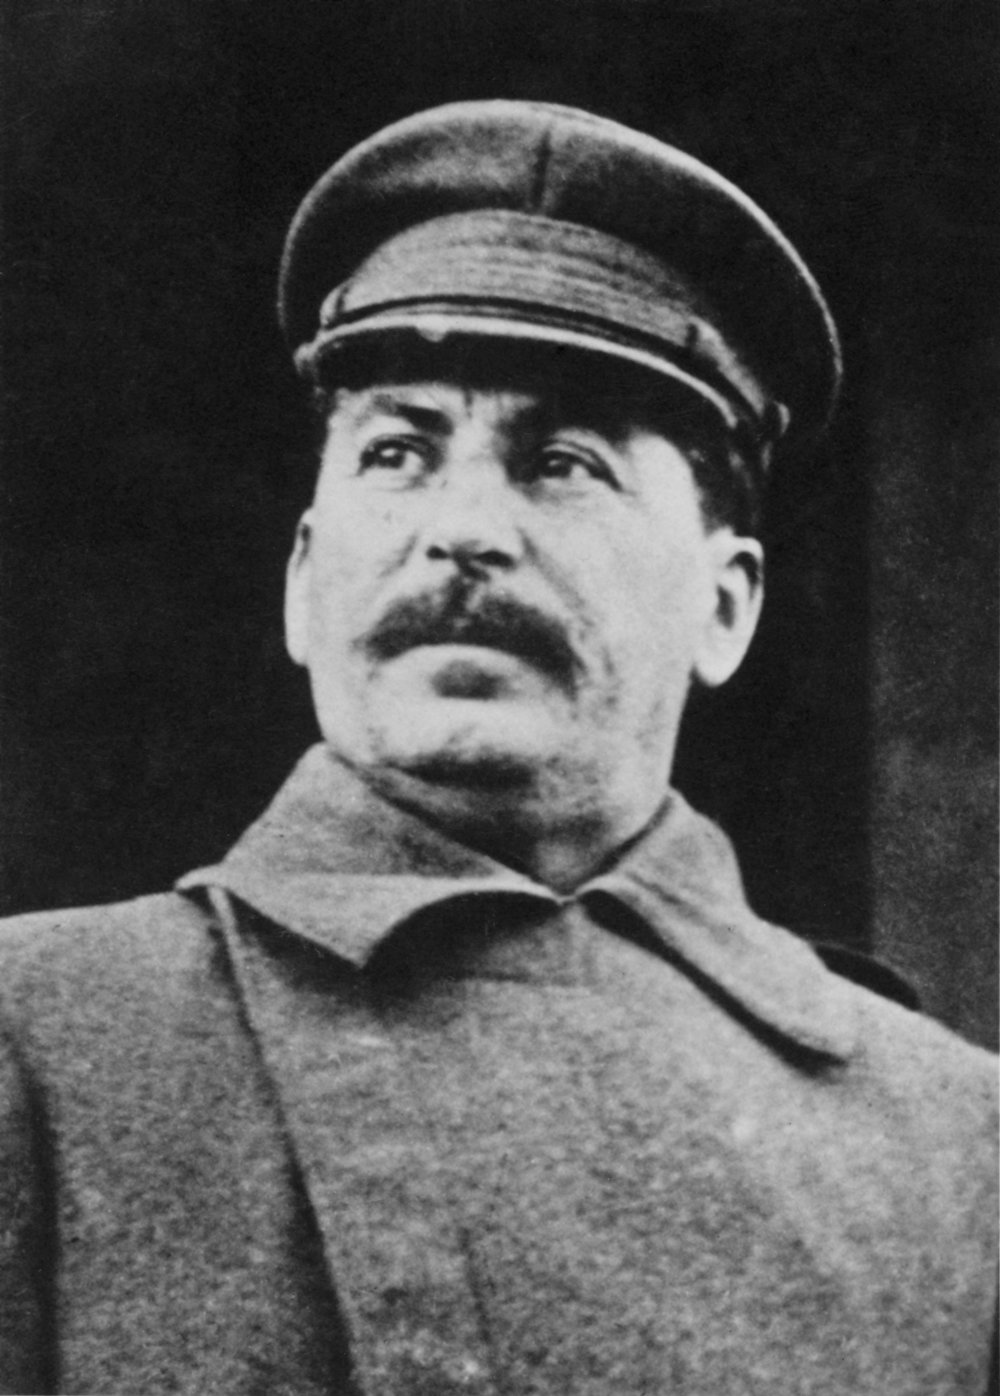 . Joseph Stalin, General Secretary of the Communist Party of the Soviet Union, circa 1930. (Photo by Keystone/Hulton Archive/Getty Images)